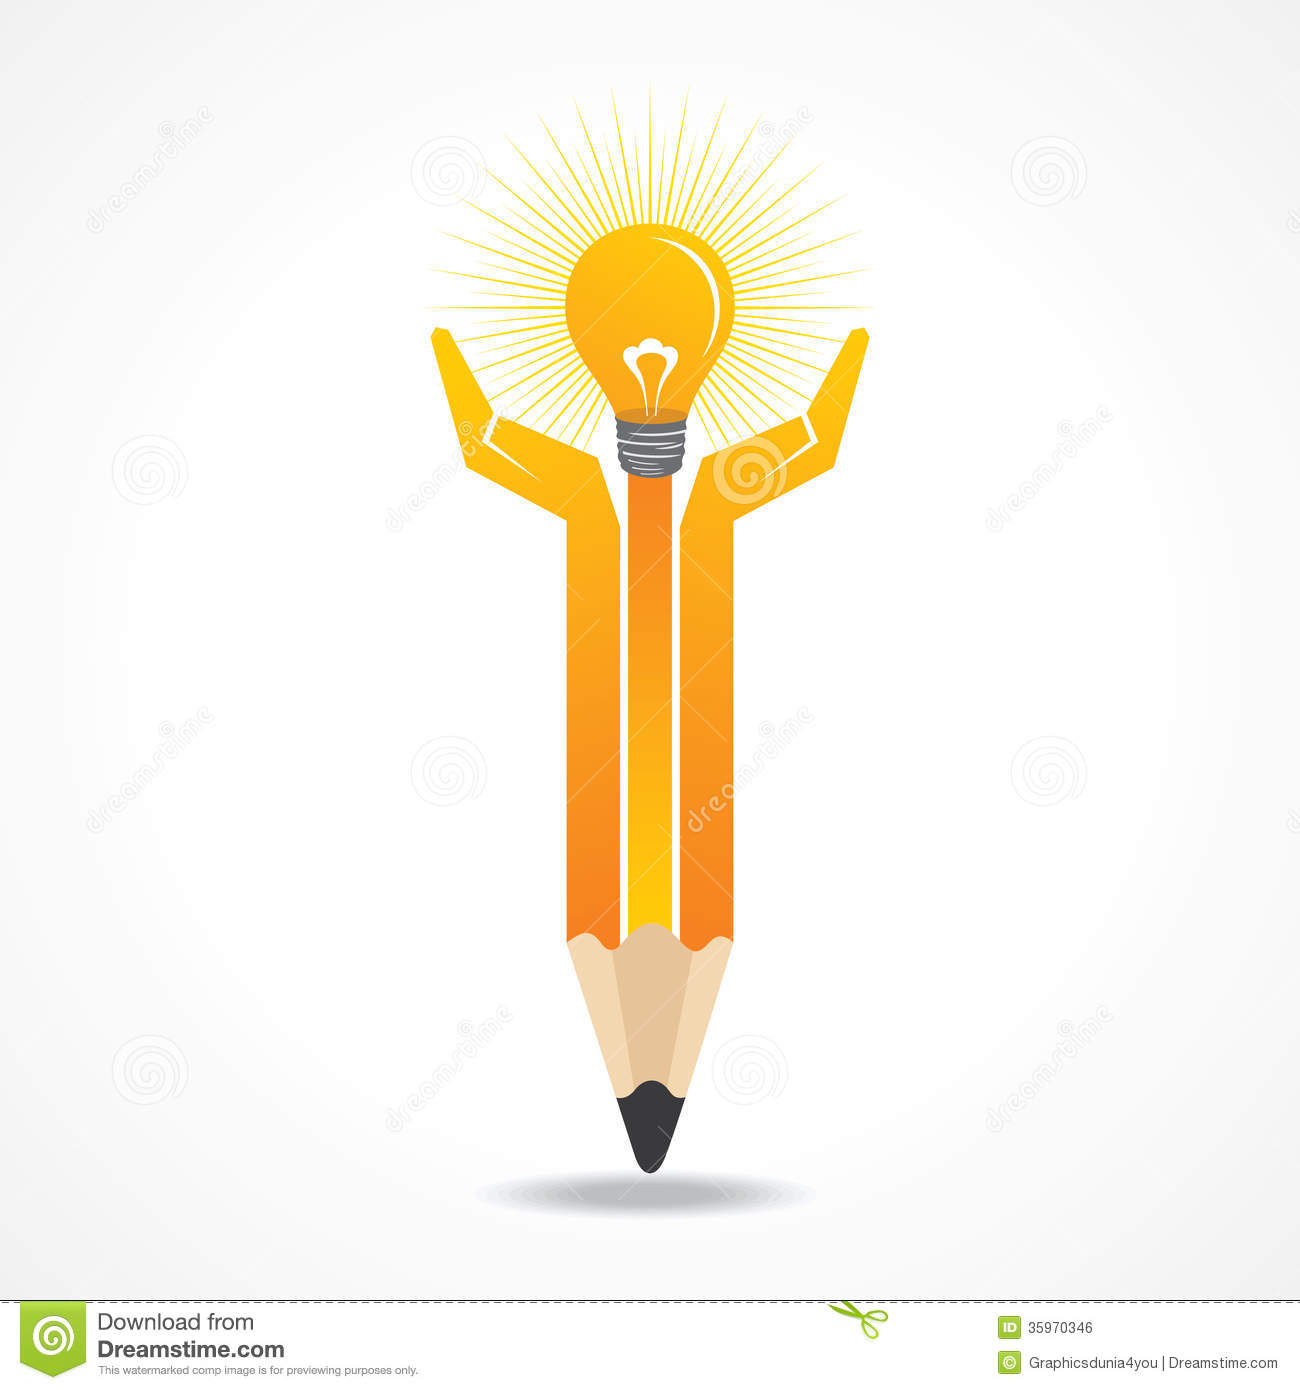 Save energy concept with pencil hands